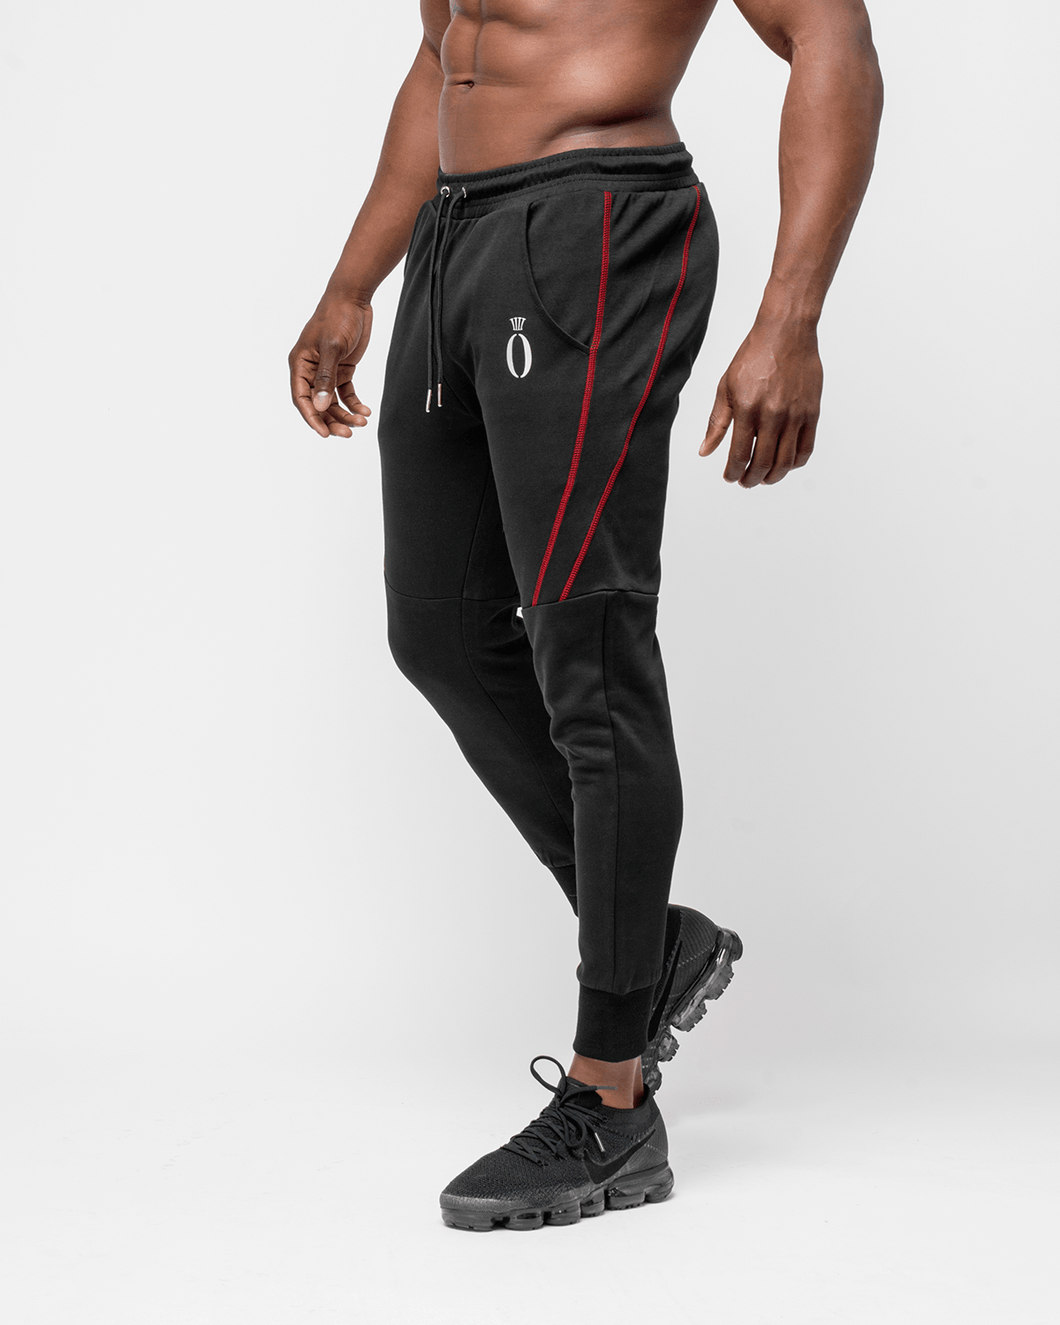 HERA x HERO - Dual Joggers - Black & Red - Seitlich